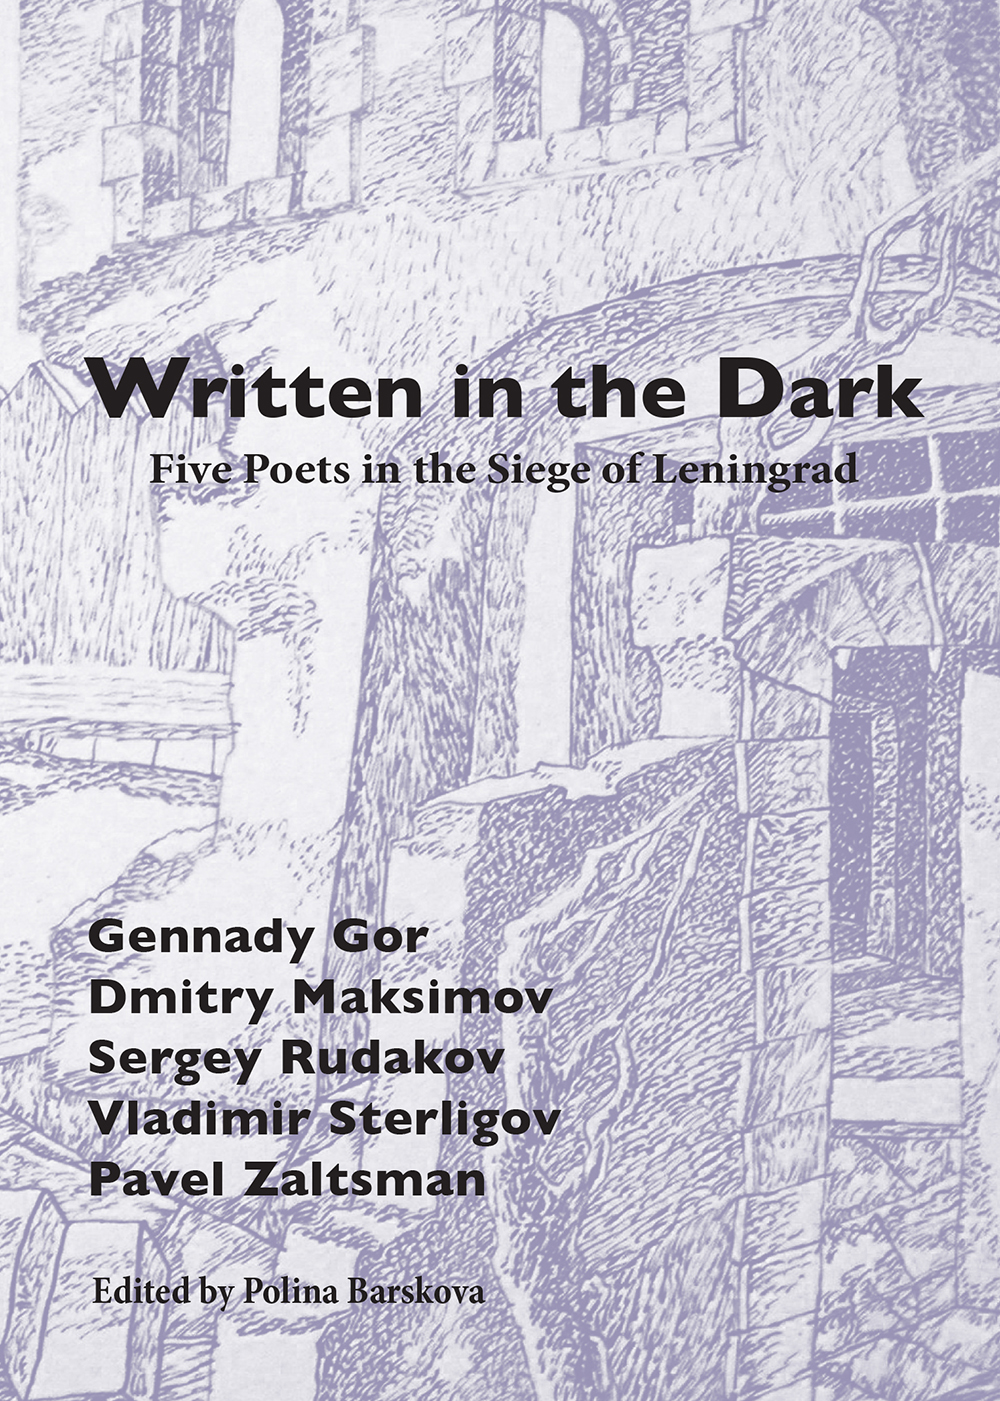 Written in the Dark: Five Poets in the Siege of Leningrad